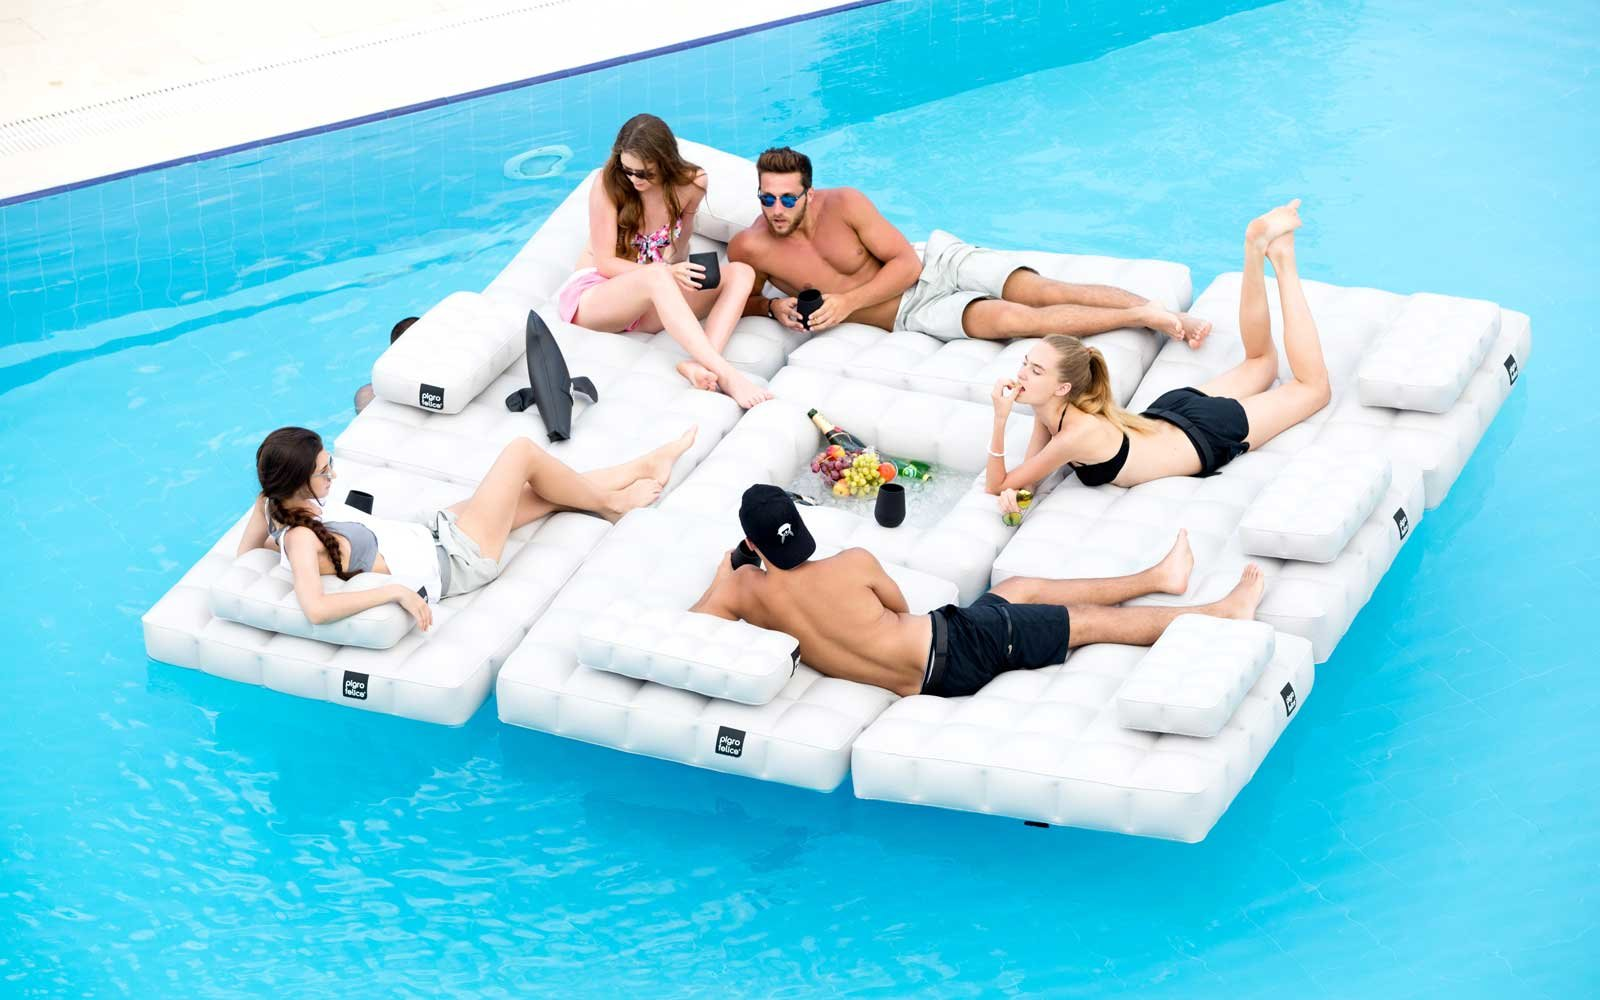 This $450 Air Bed Is the Fanciest Pool Float Ever | Travel + ...